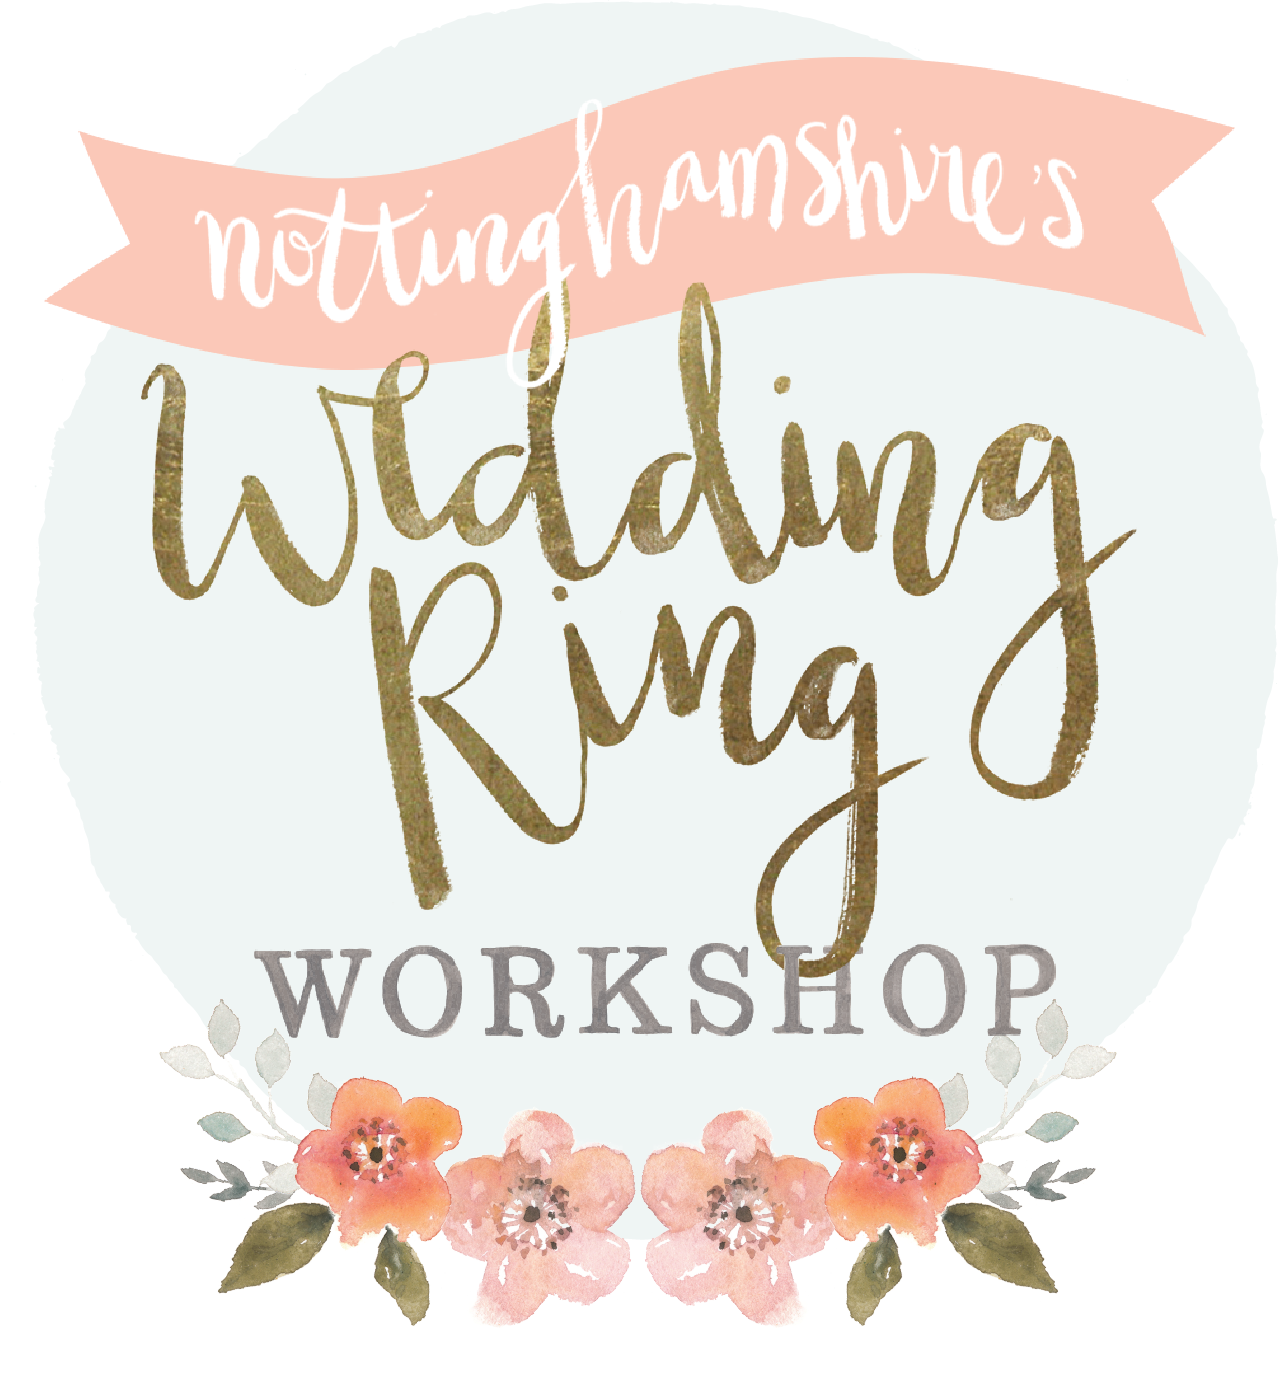 The Nottinghamshire's Wedding Ring Workshop